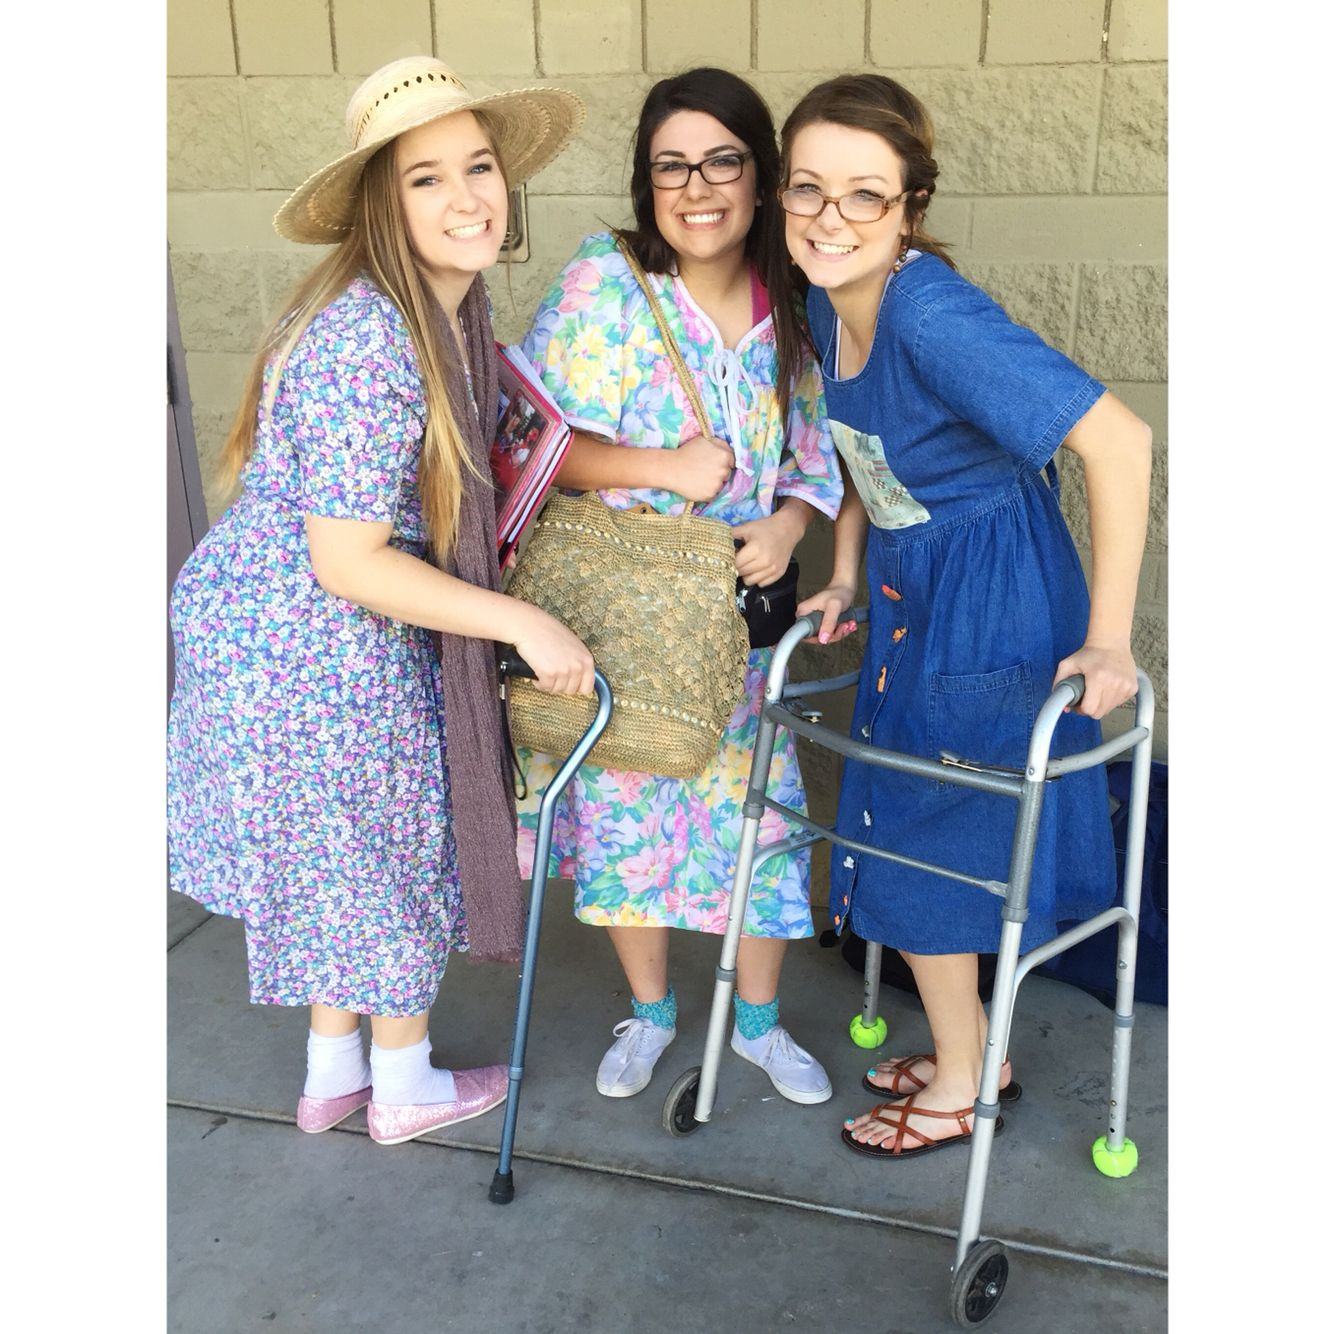 Elderly day: spirit day idea | Student Council | Pinterest ...